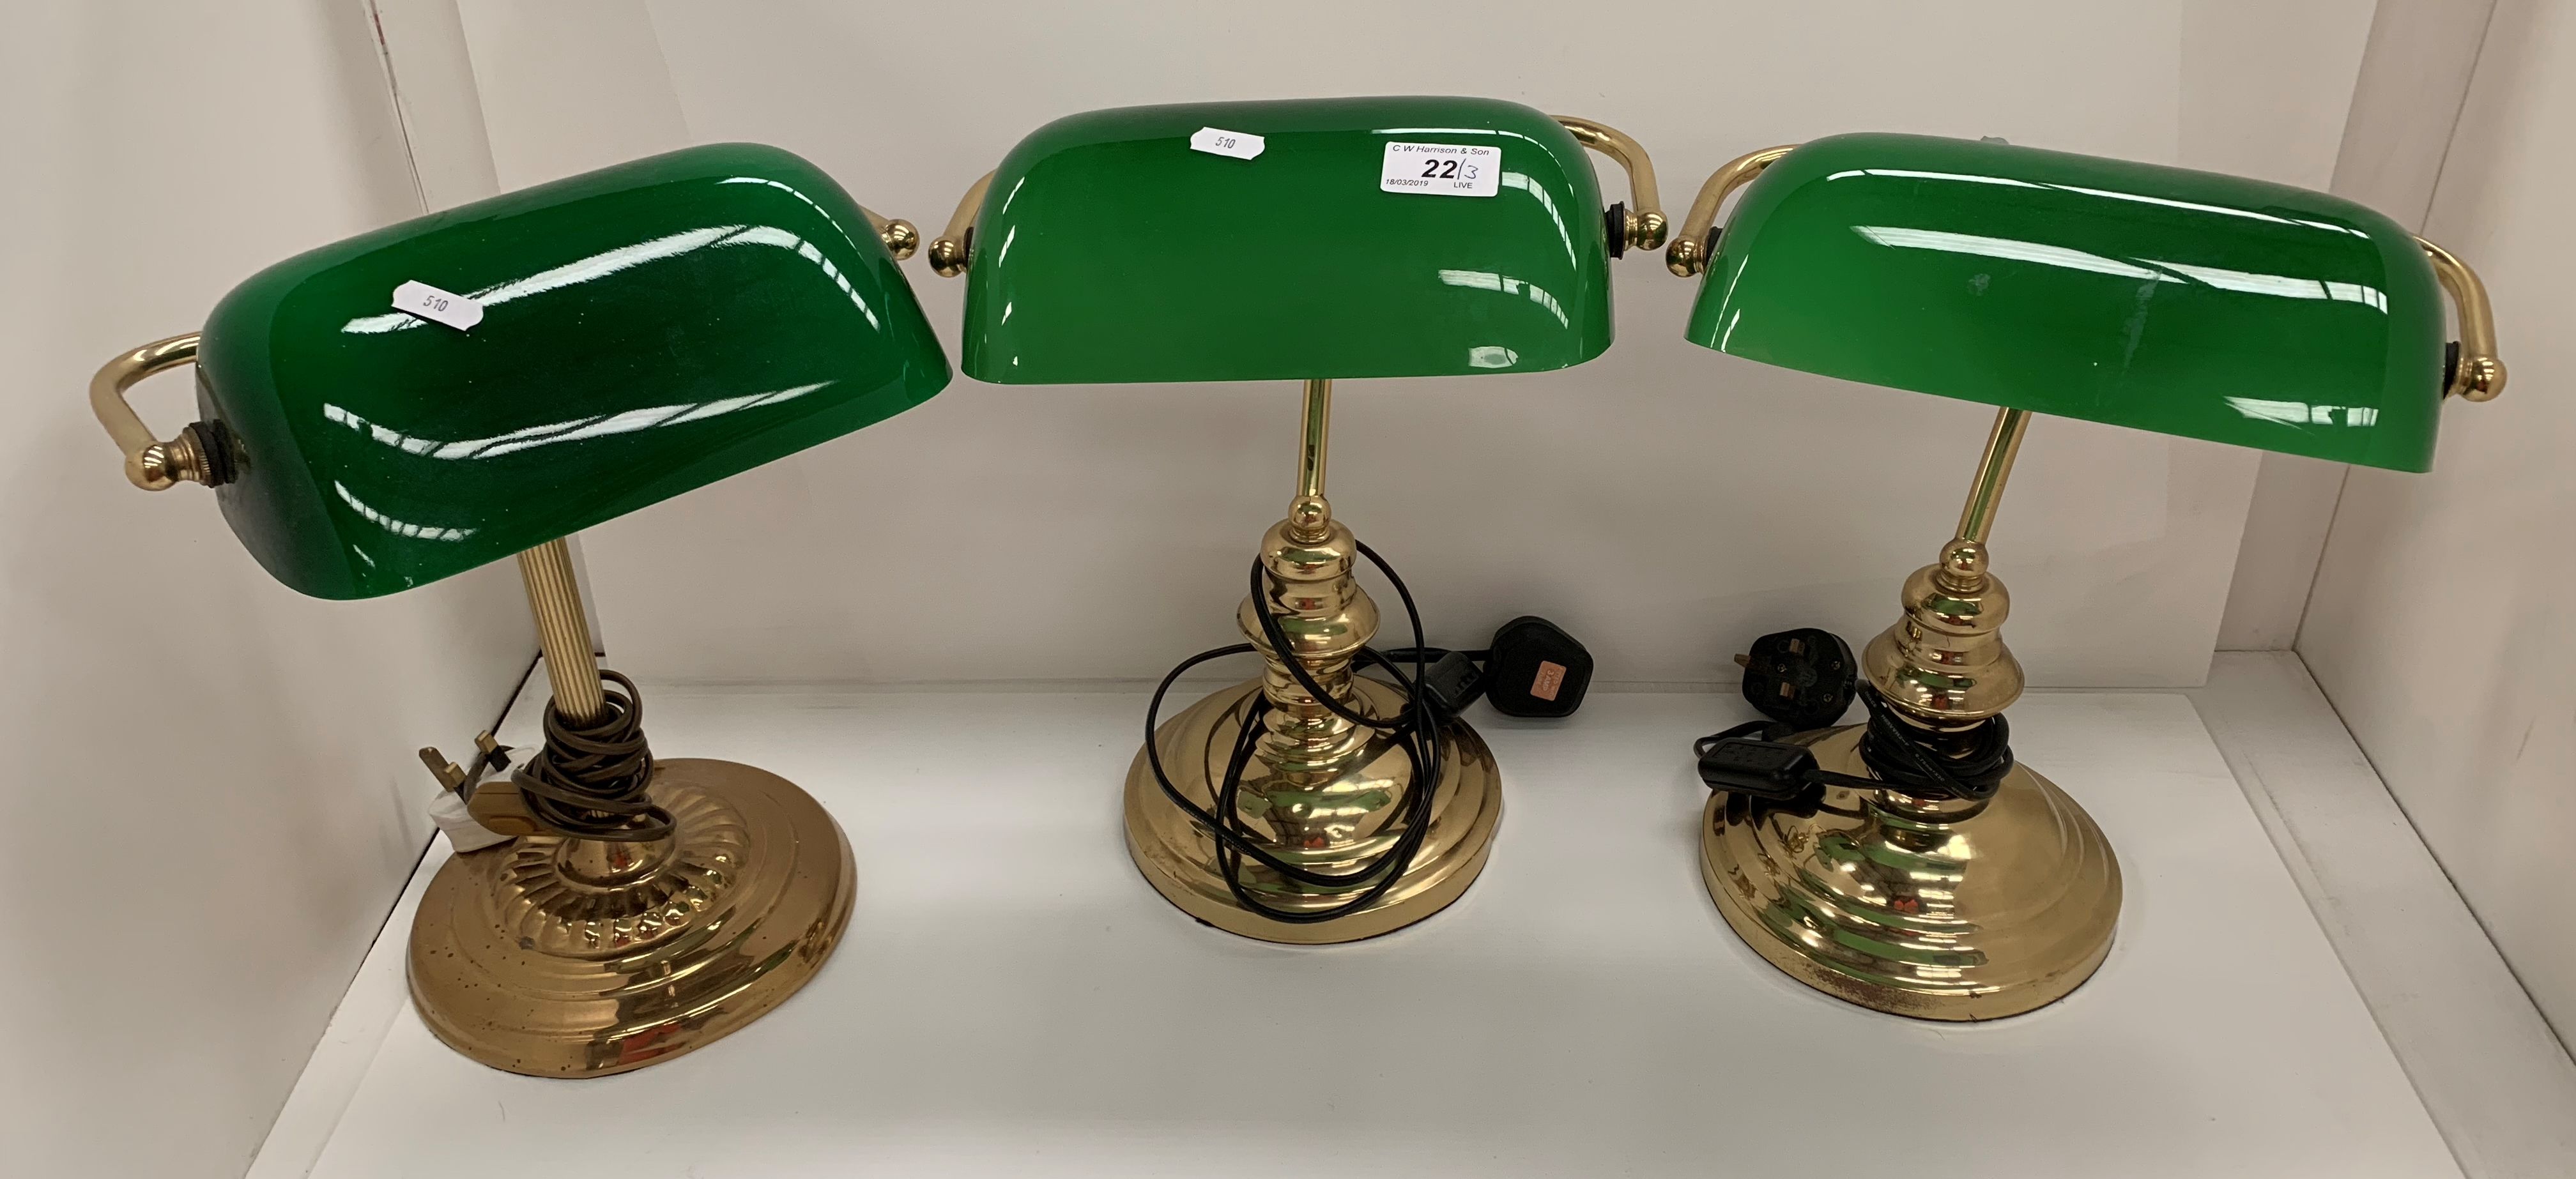 Lot 22 - Three brass table lamps with green glass shades